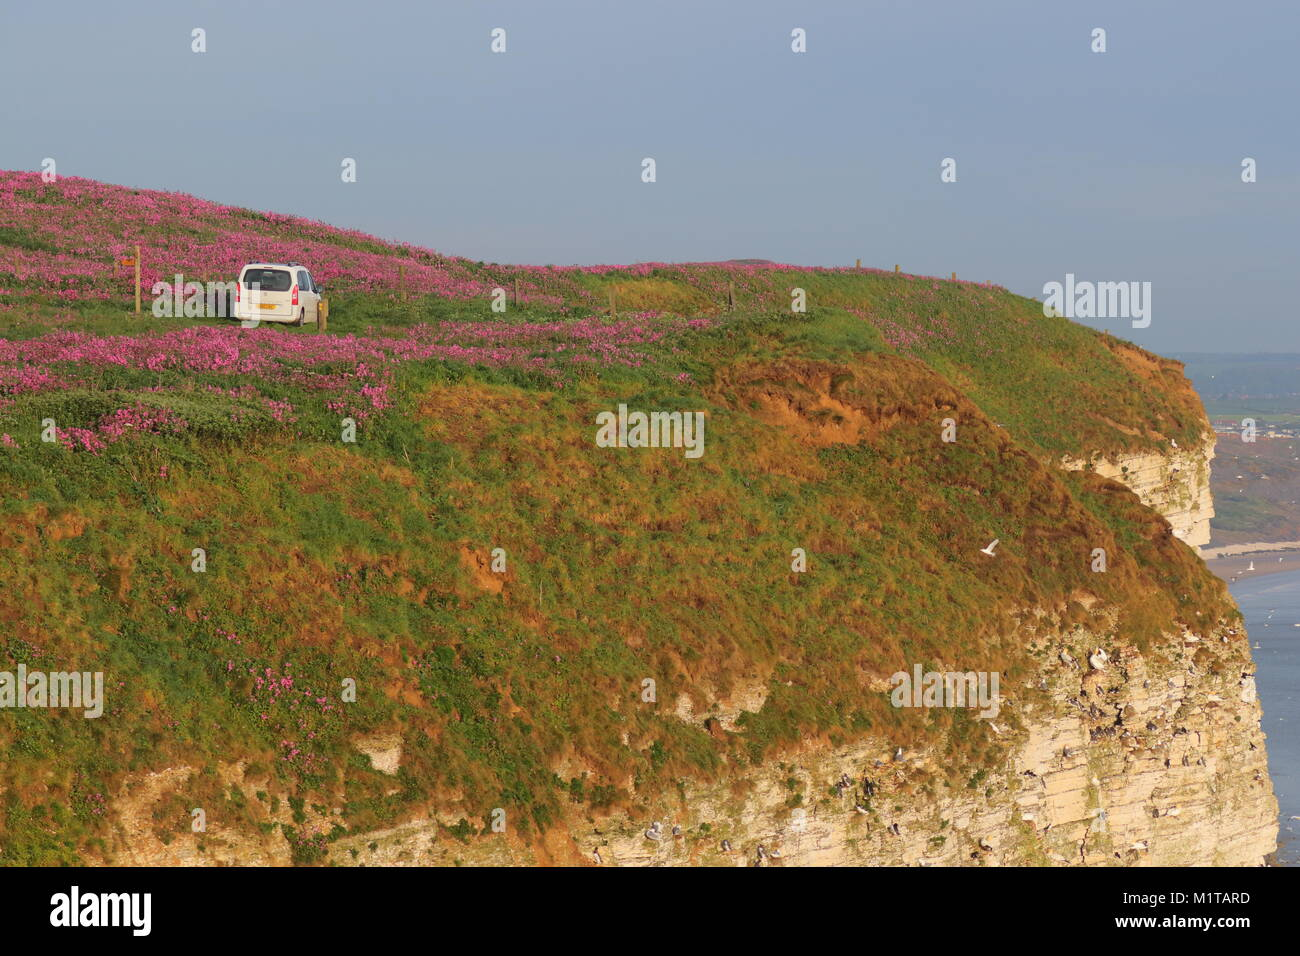 A private farm track runs along the edge of a cliff at Bempton , giving the impression this driver is lost. - Stock Image